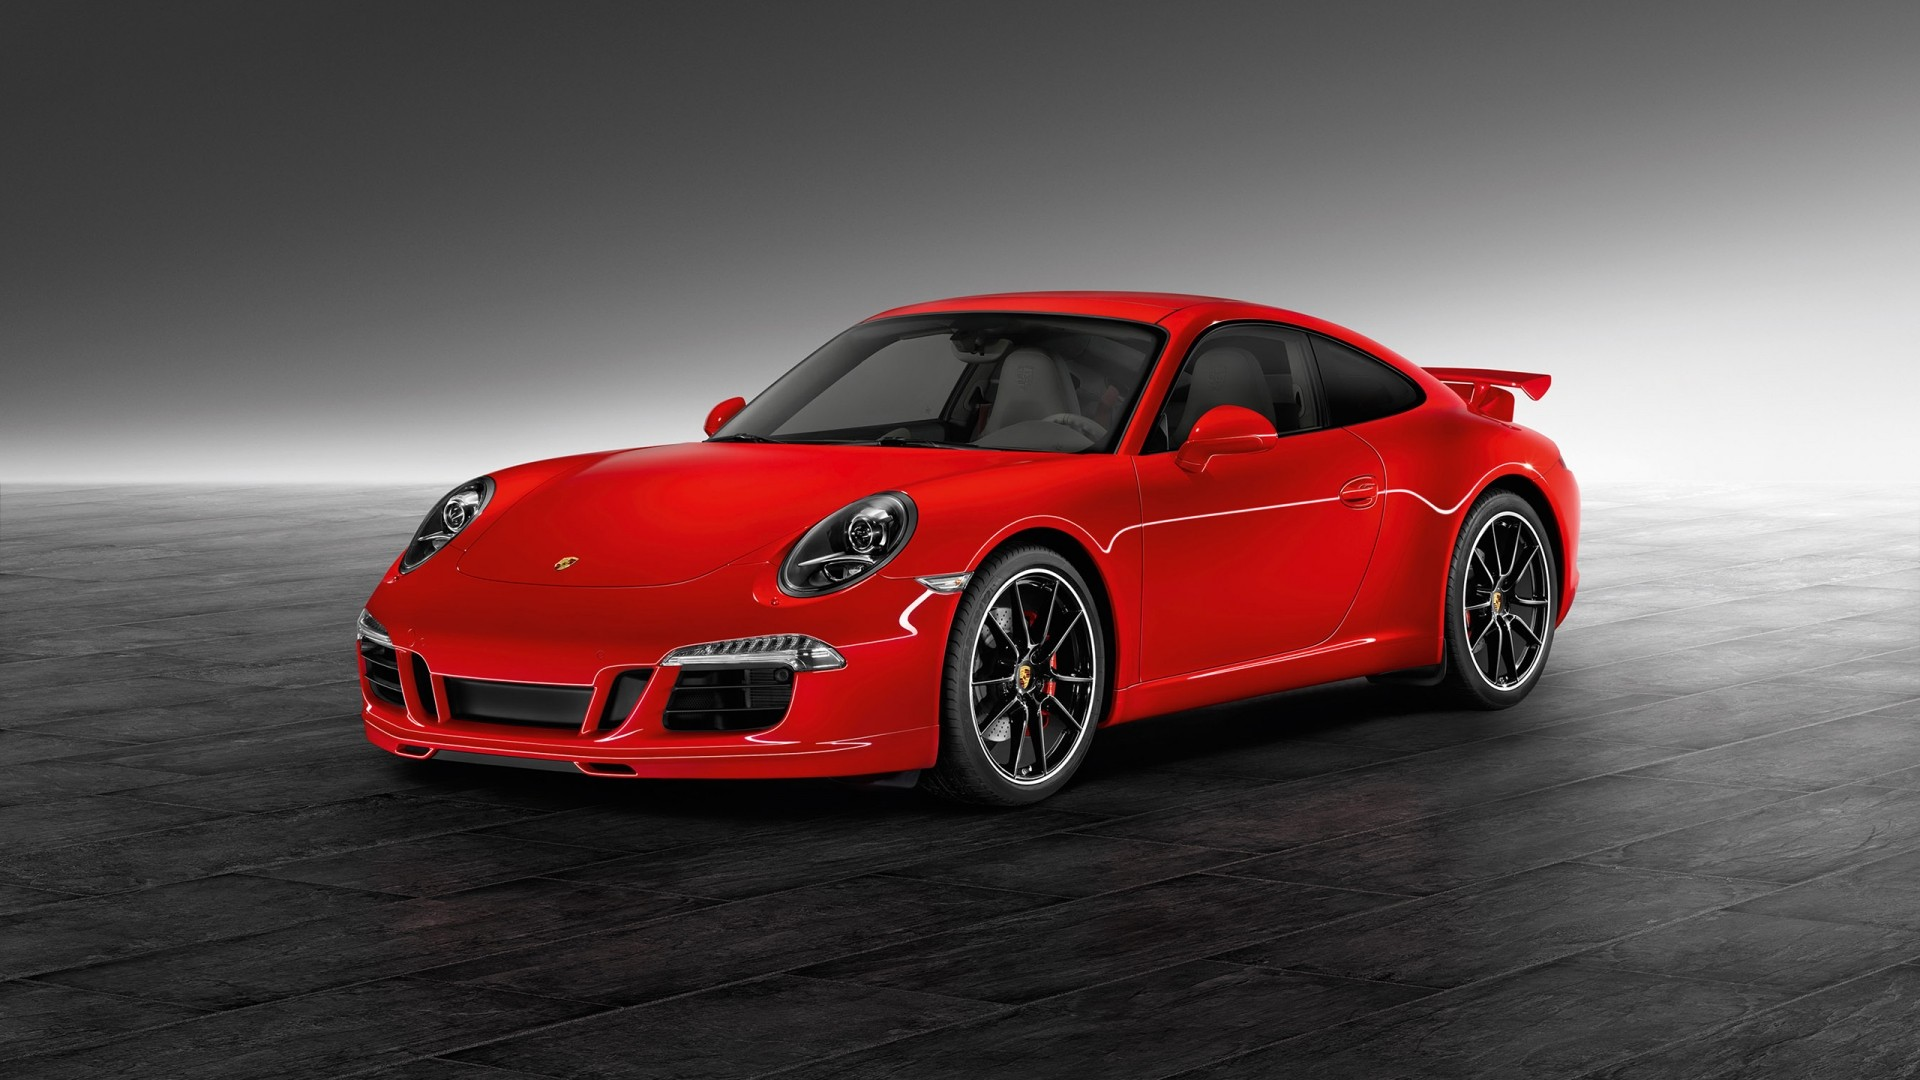 Download Wallpaper red cars 911 carrera red cars rims porsche 911